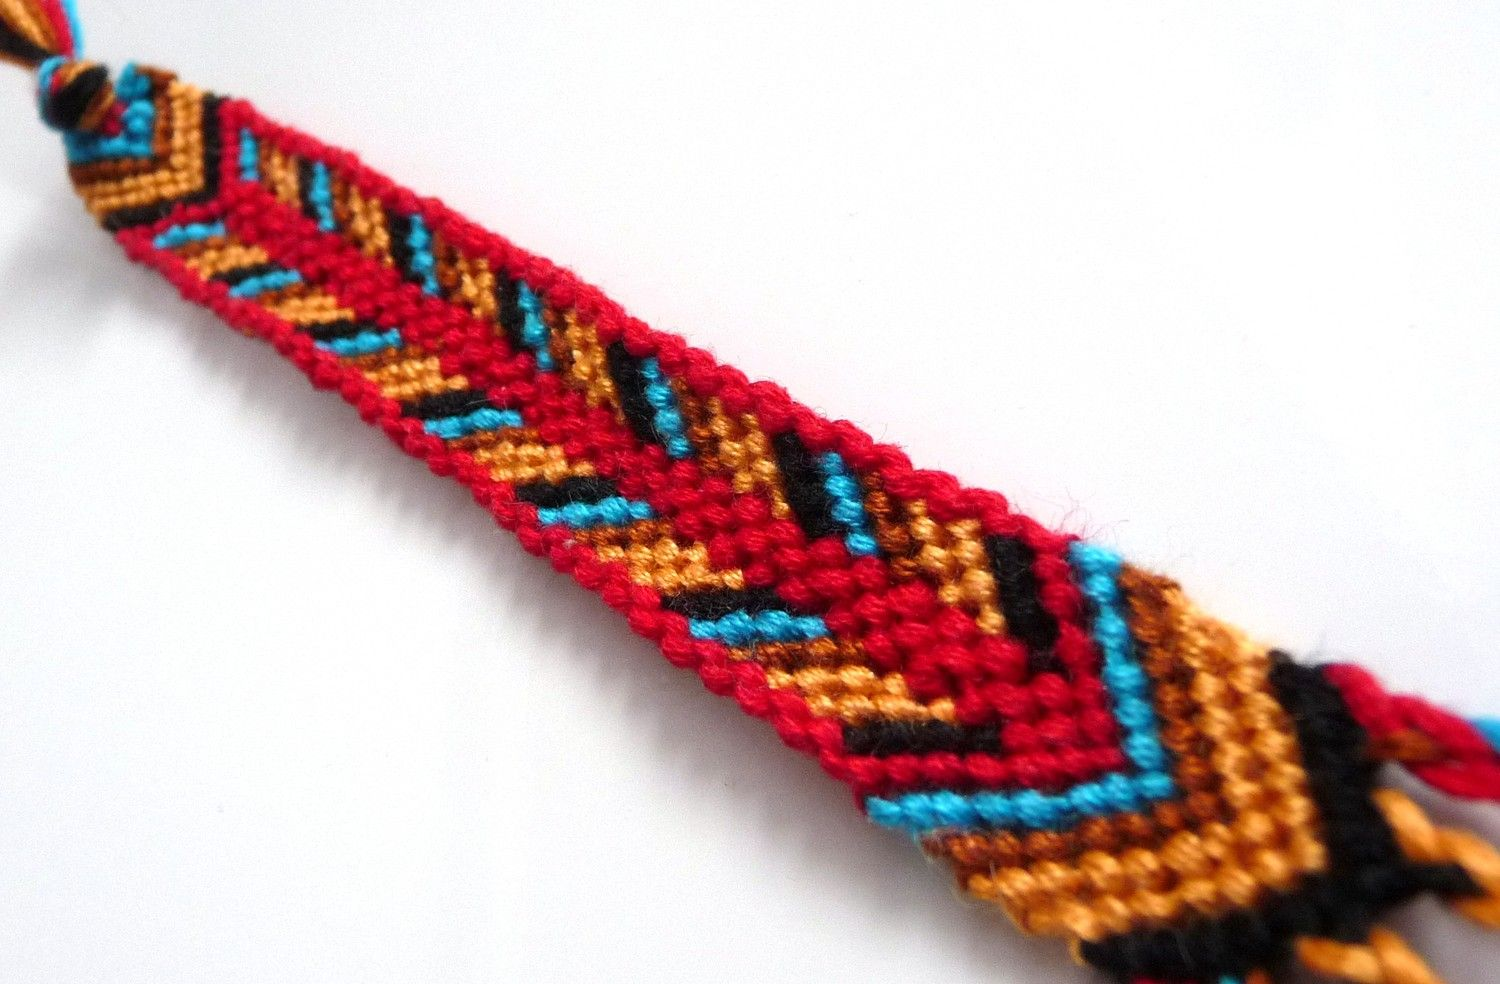 crafts paracord pinterest diy pin thread embroidery bracelet